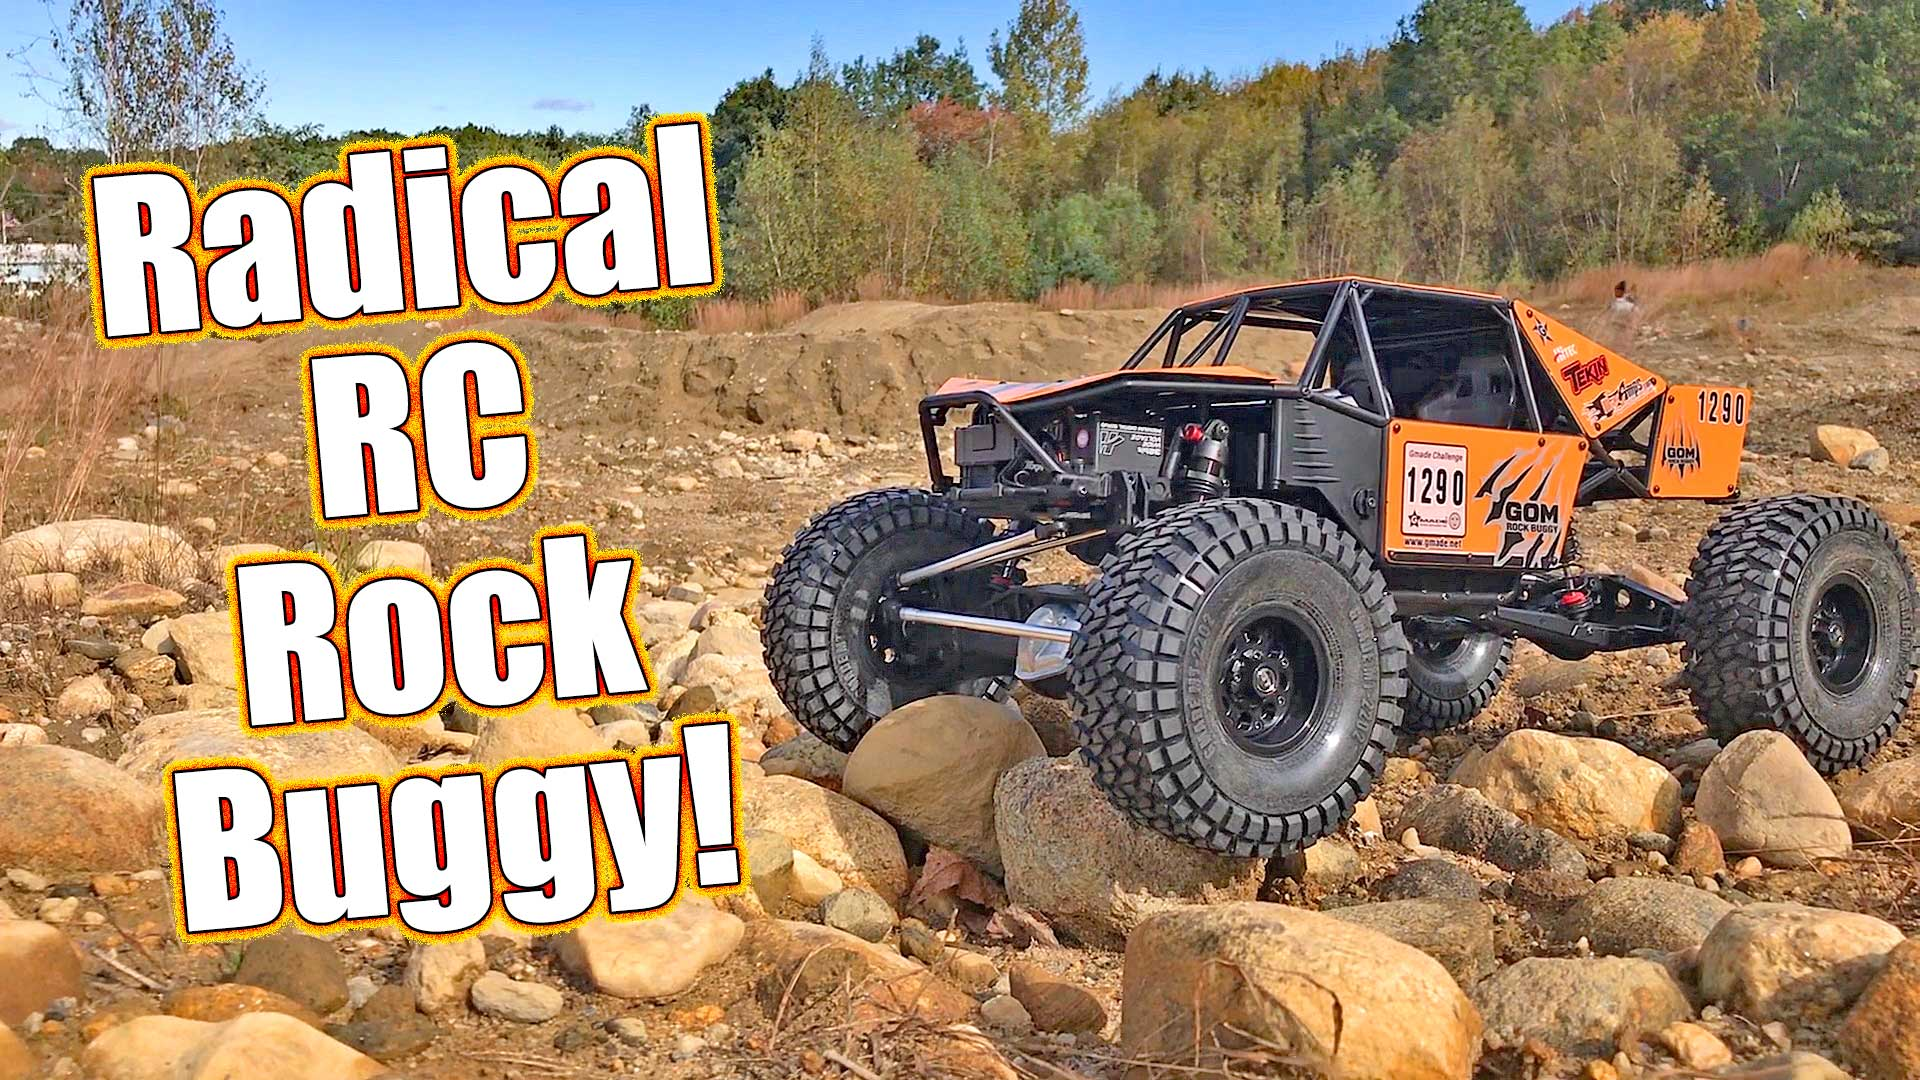 GMADE GR01 4WD GOM Rock Buggy Kit Review